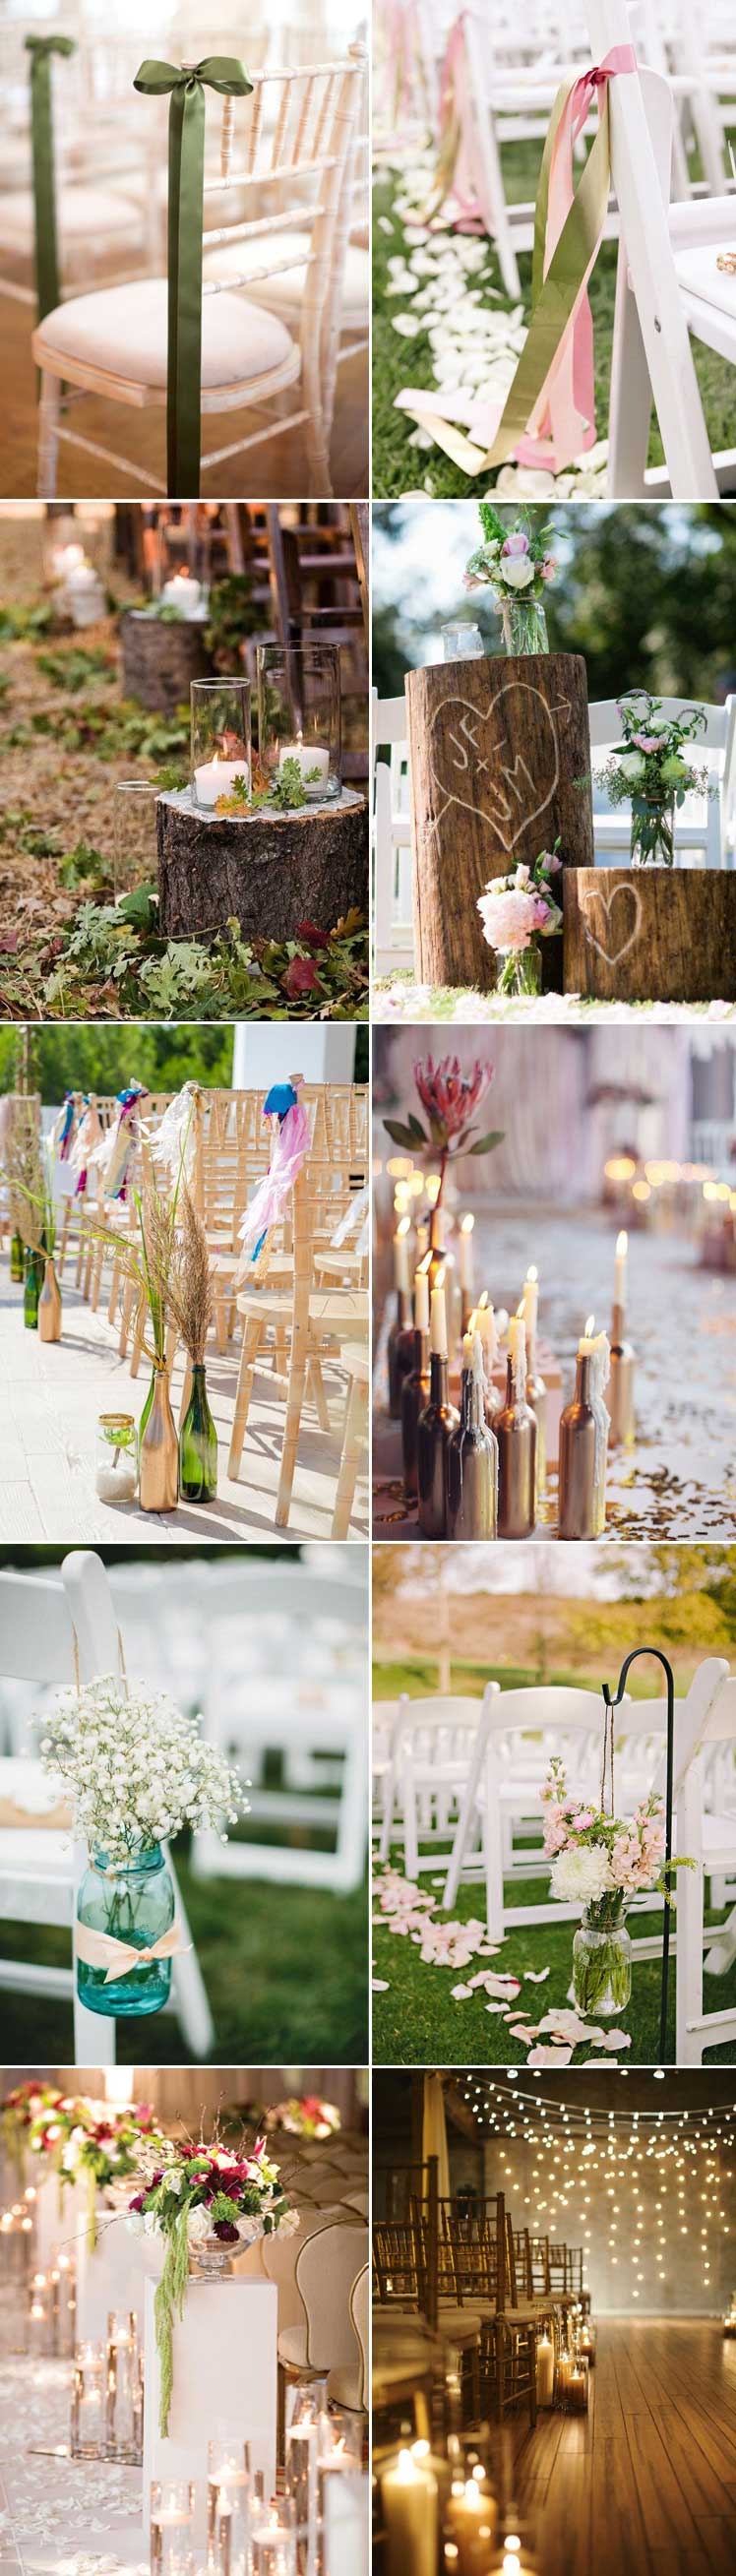 stunning wedding aisle ideas